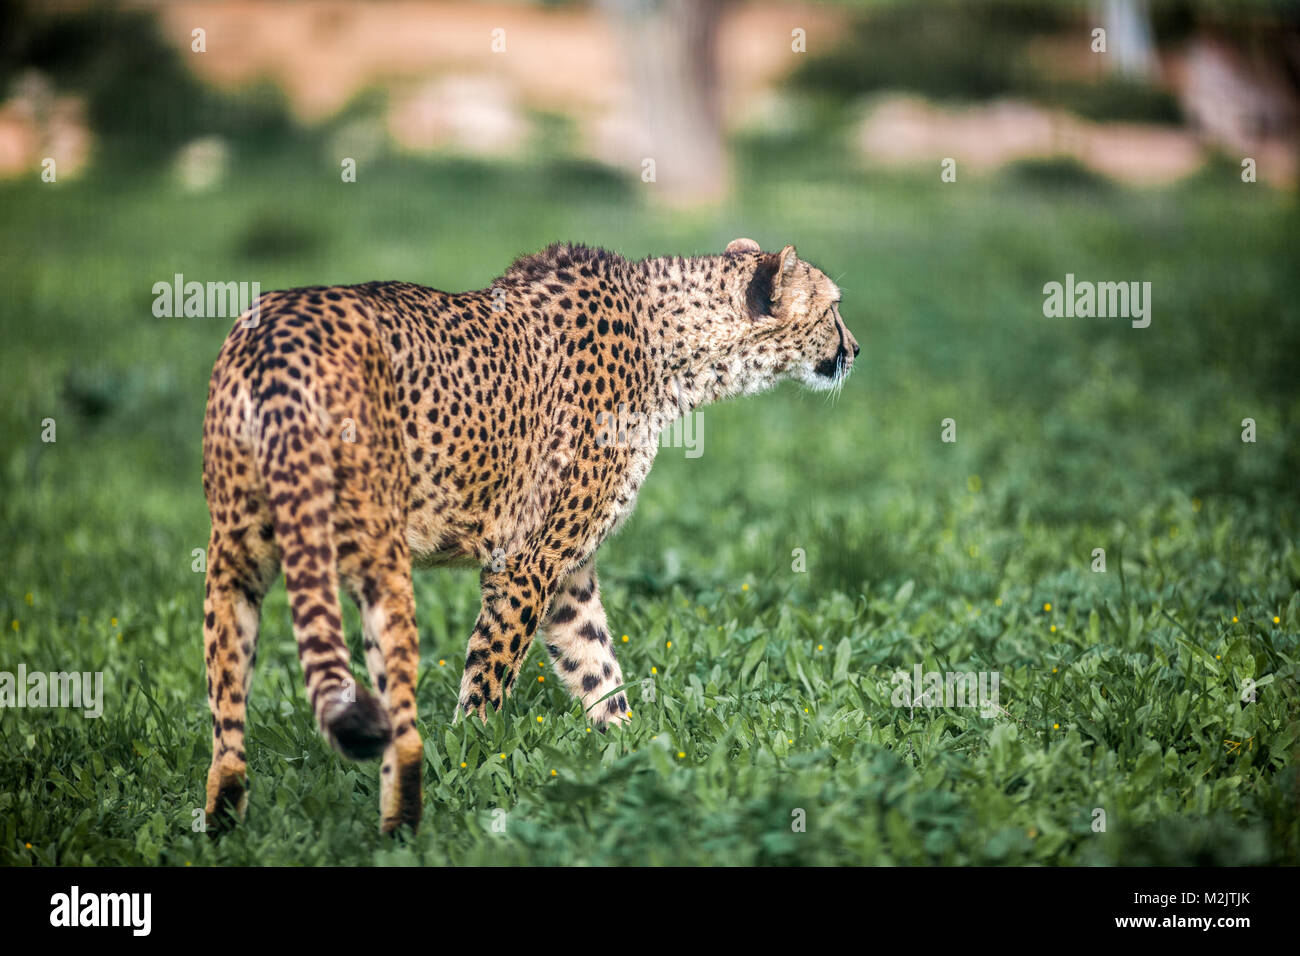 Beautiful Wild Cheetah walking careful on green fields, Close up - Stock Image